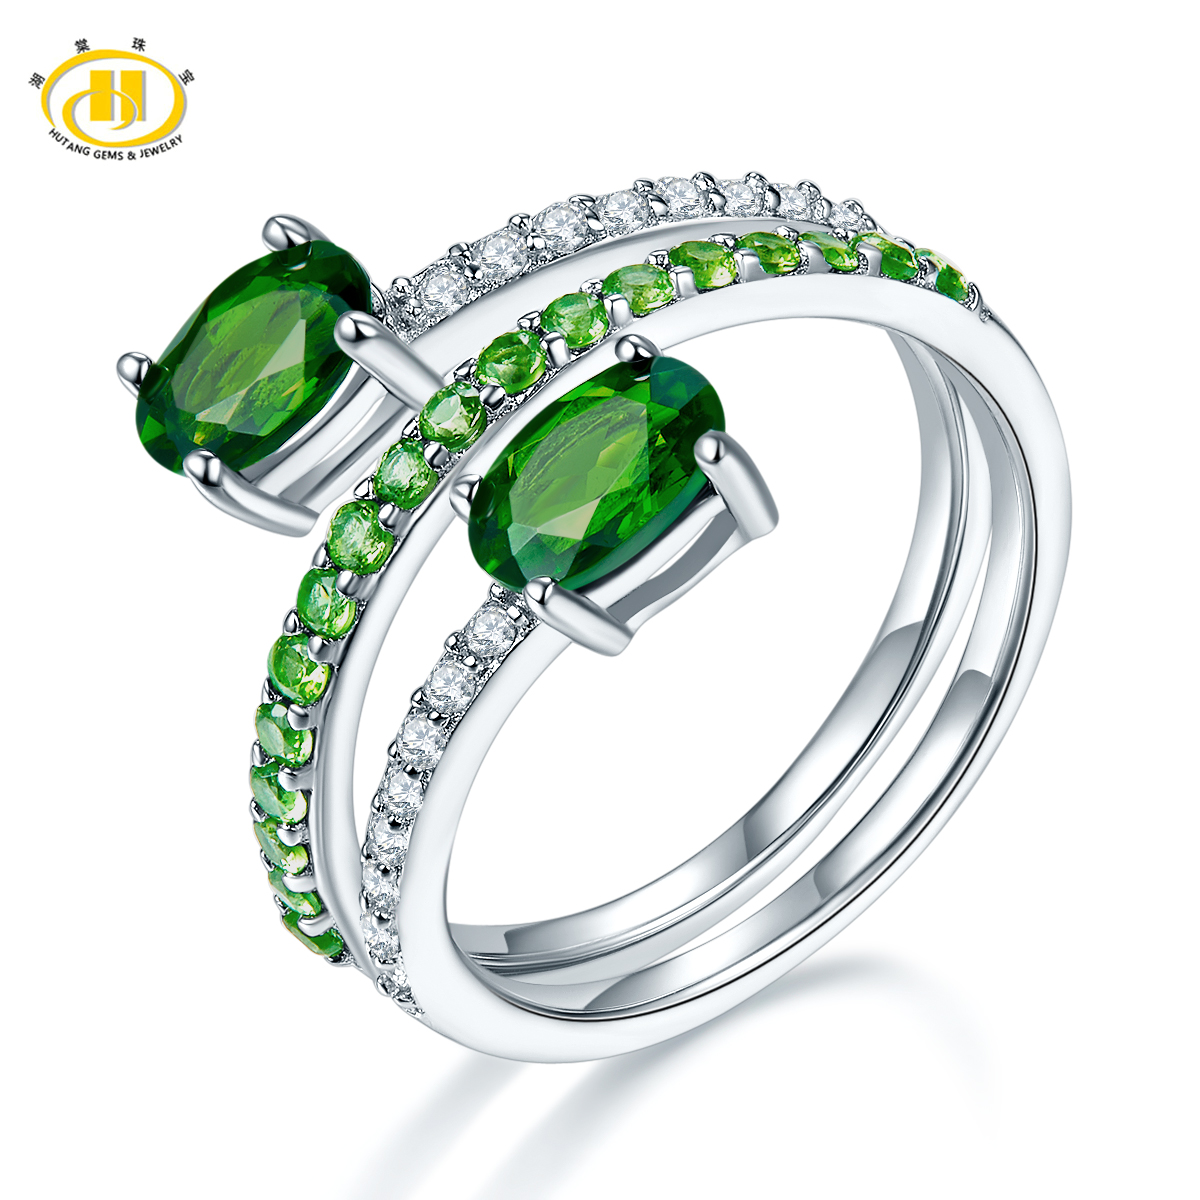 Hutang By Pass Ring Natural Chrome Diopside Genuine 925 Sterling Silver Gemstone Fine Jewelry for Women Christmas Gift 2018